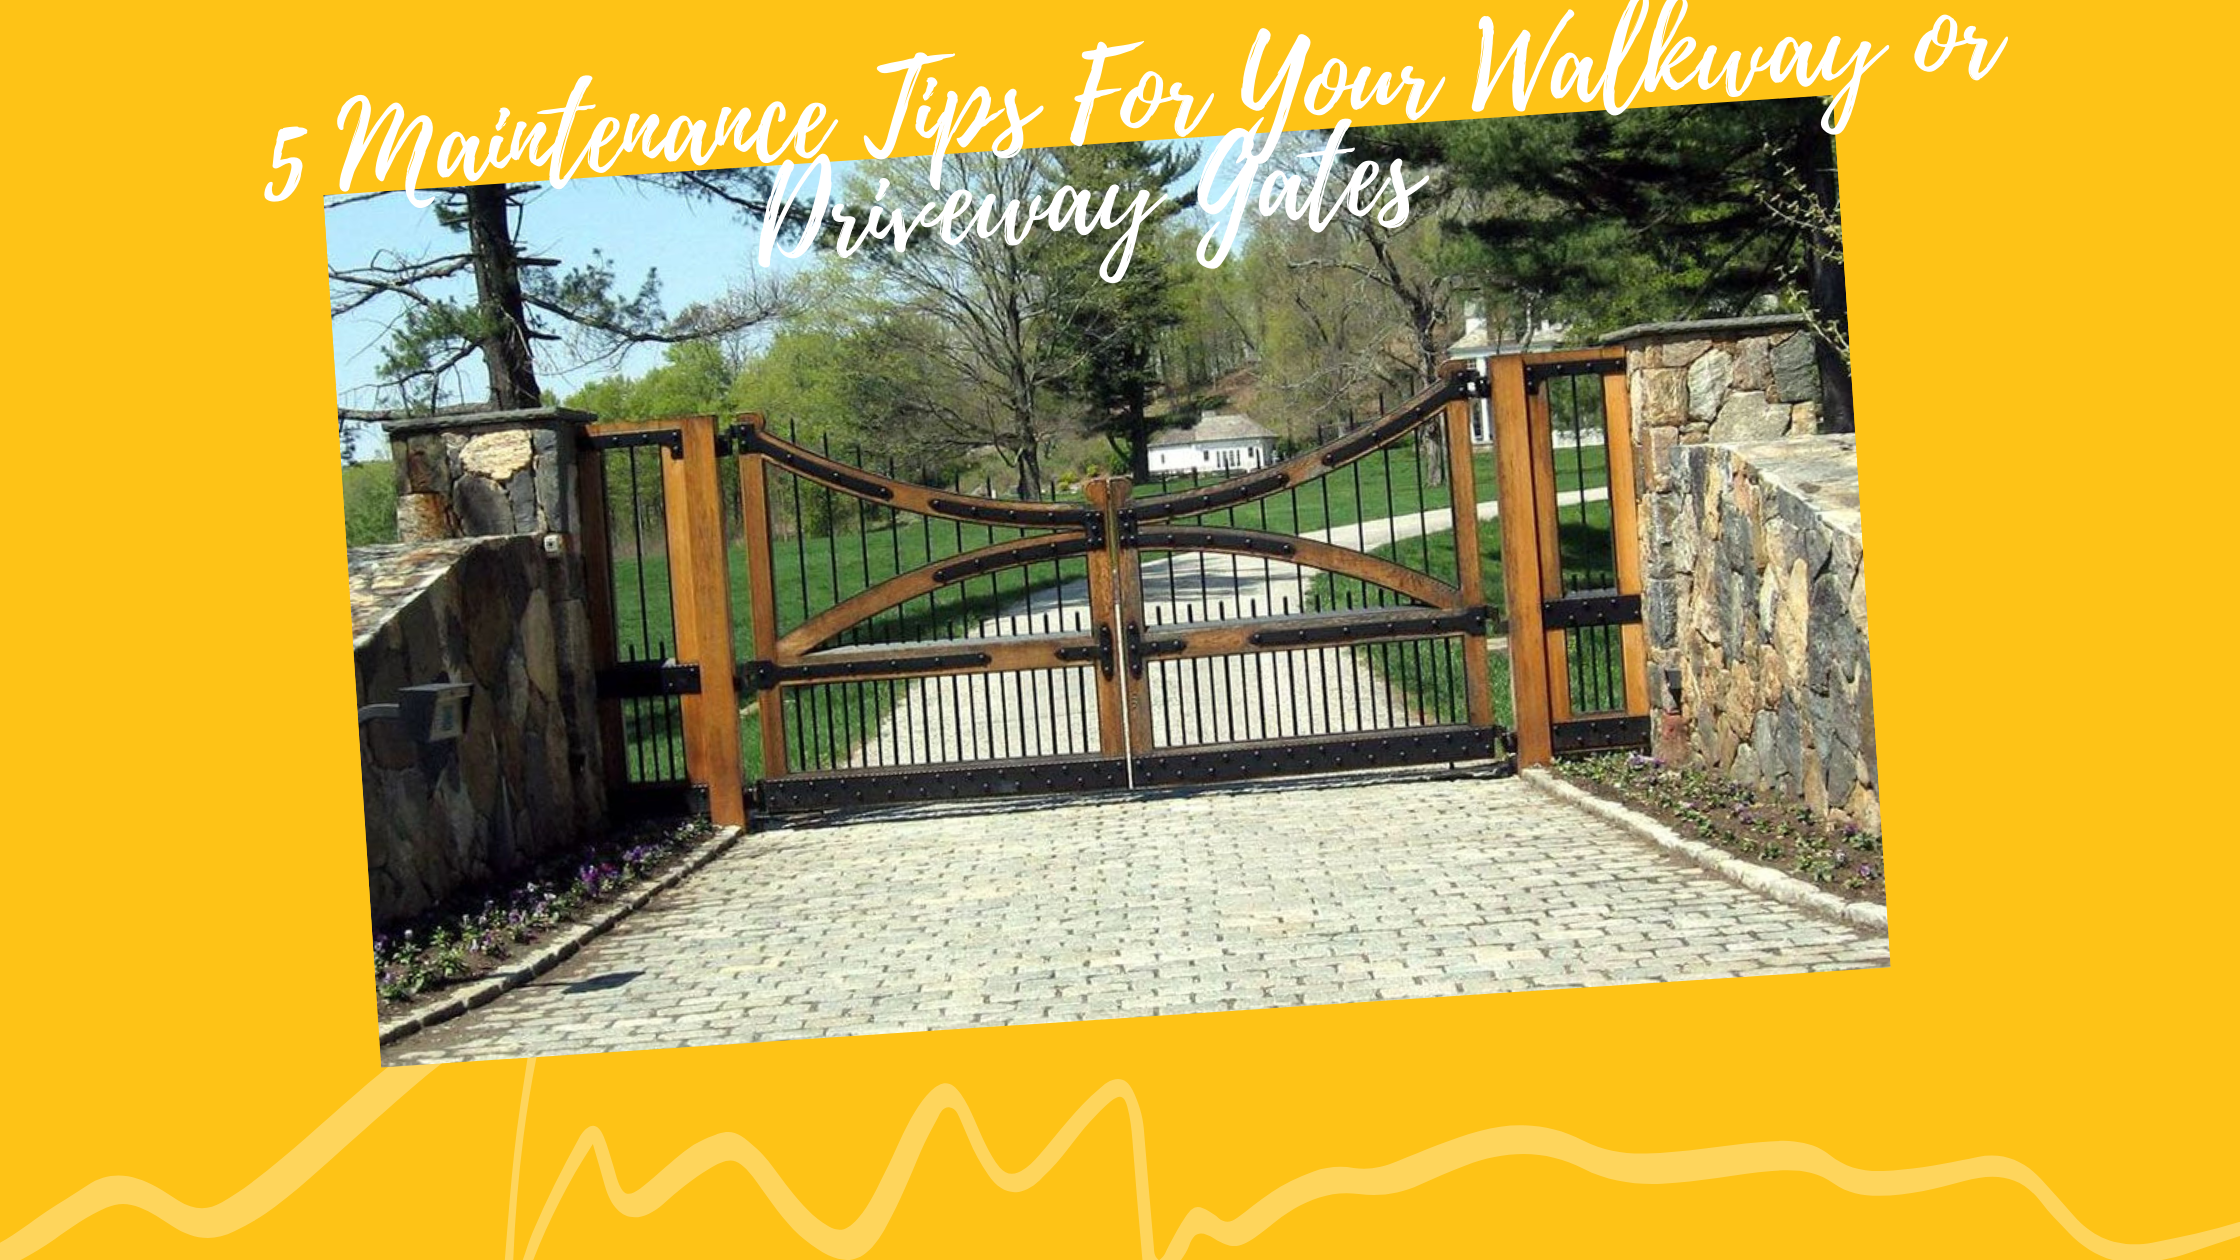 5 Maintenance Tips For Your Walkway or Driveway Gates